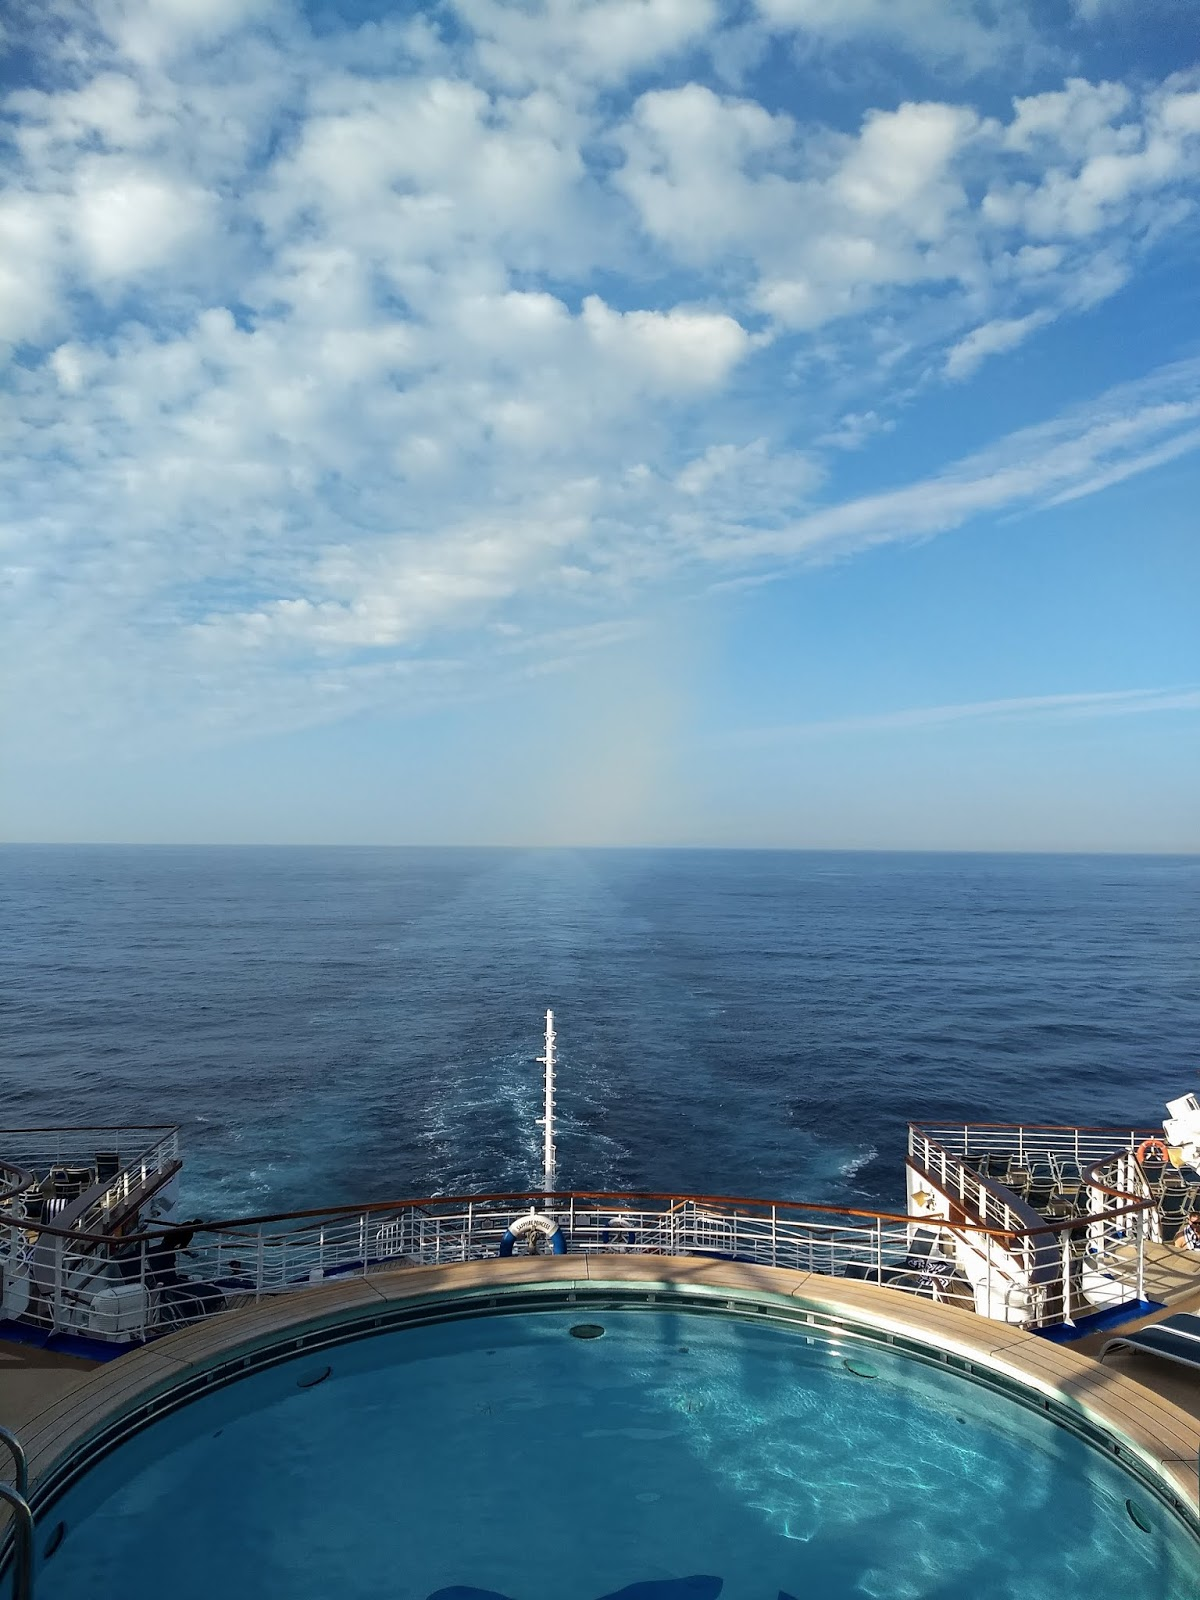 View of blue skies, a pool and the sea from the back of a cruise ship.